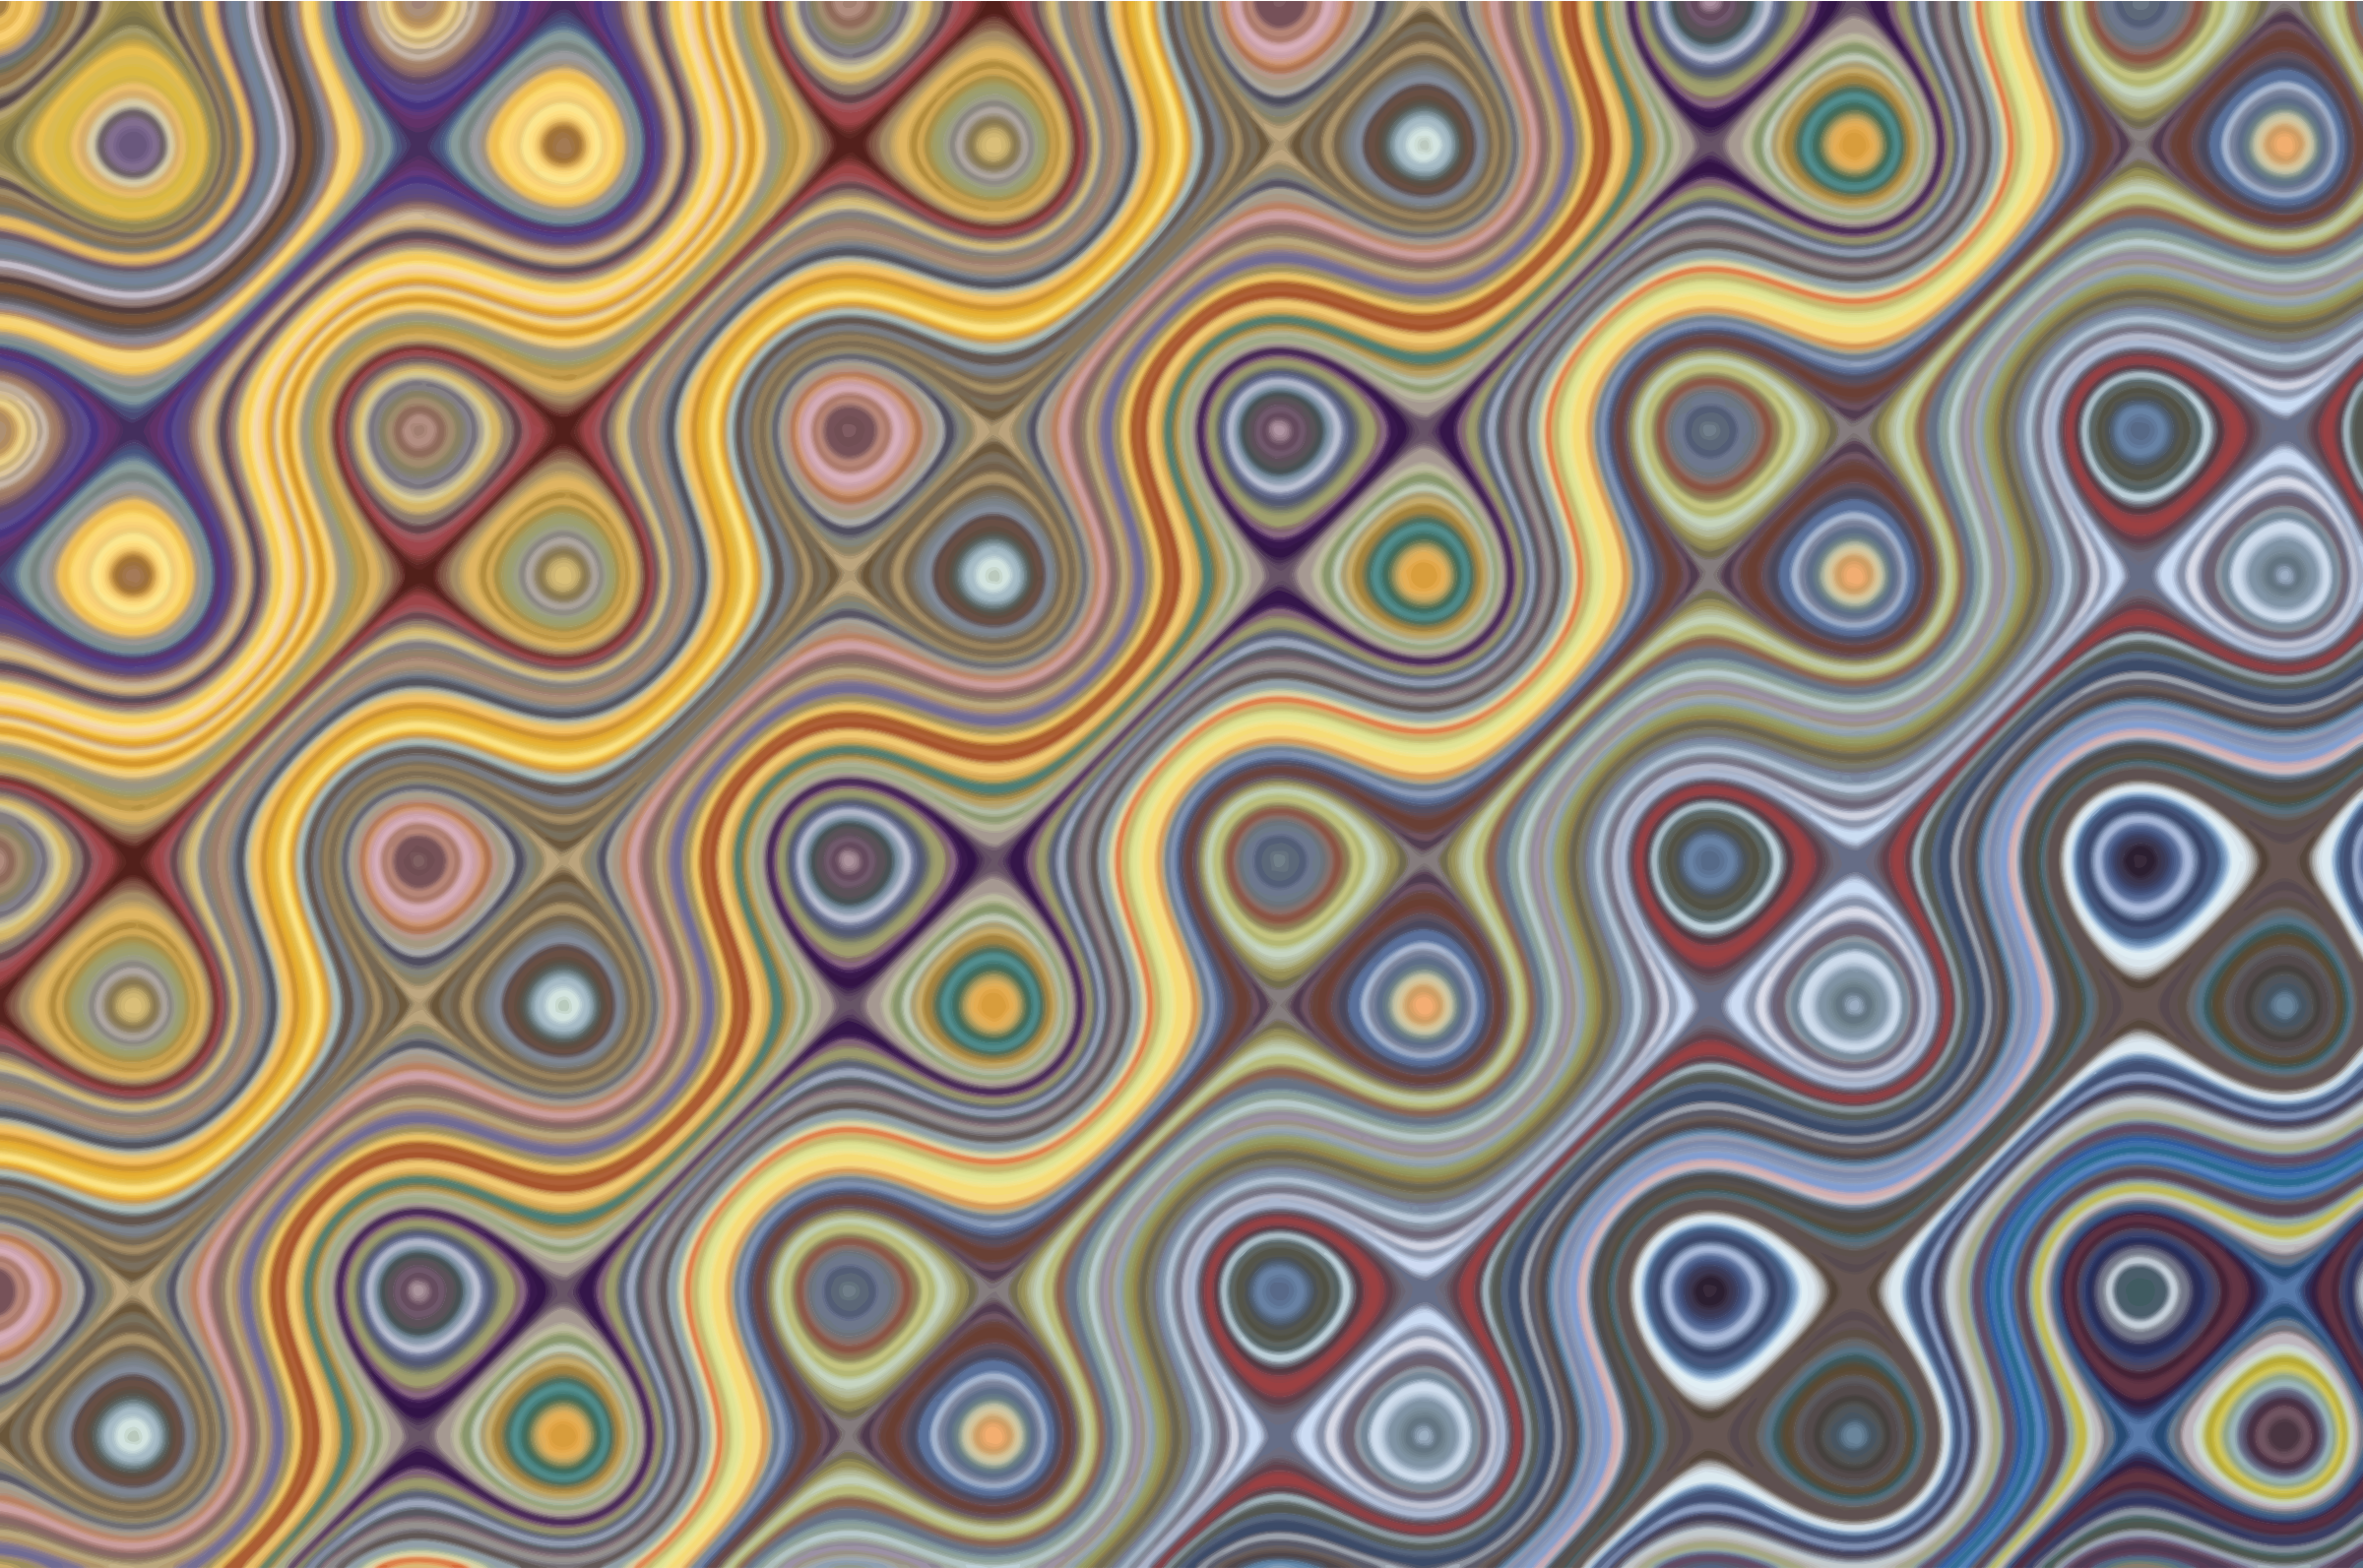 Background pattern 217 by Firkin